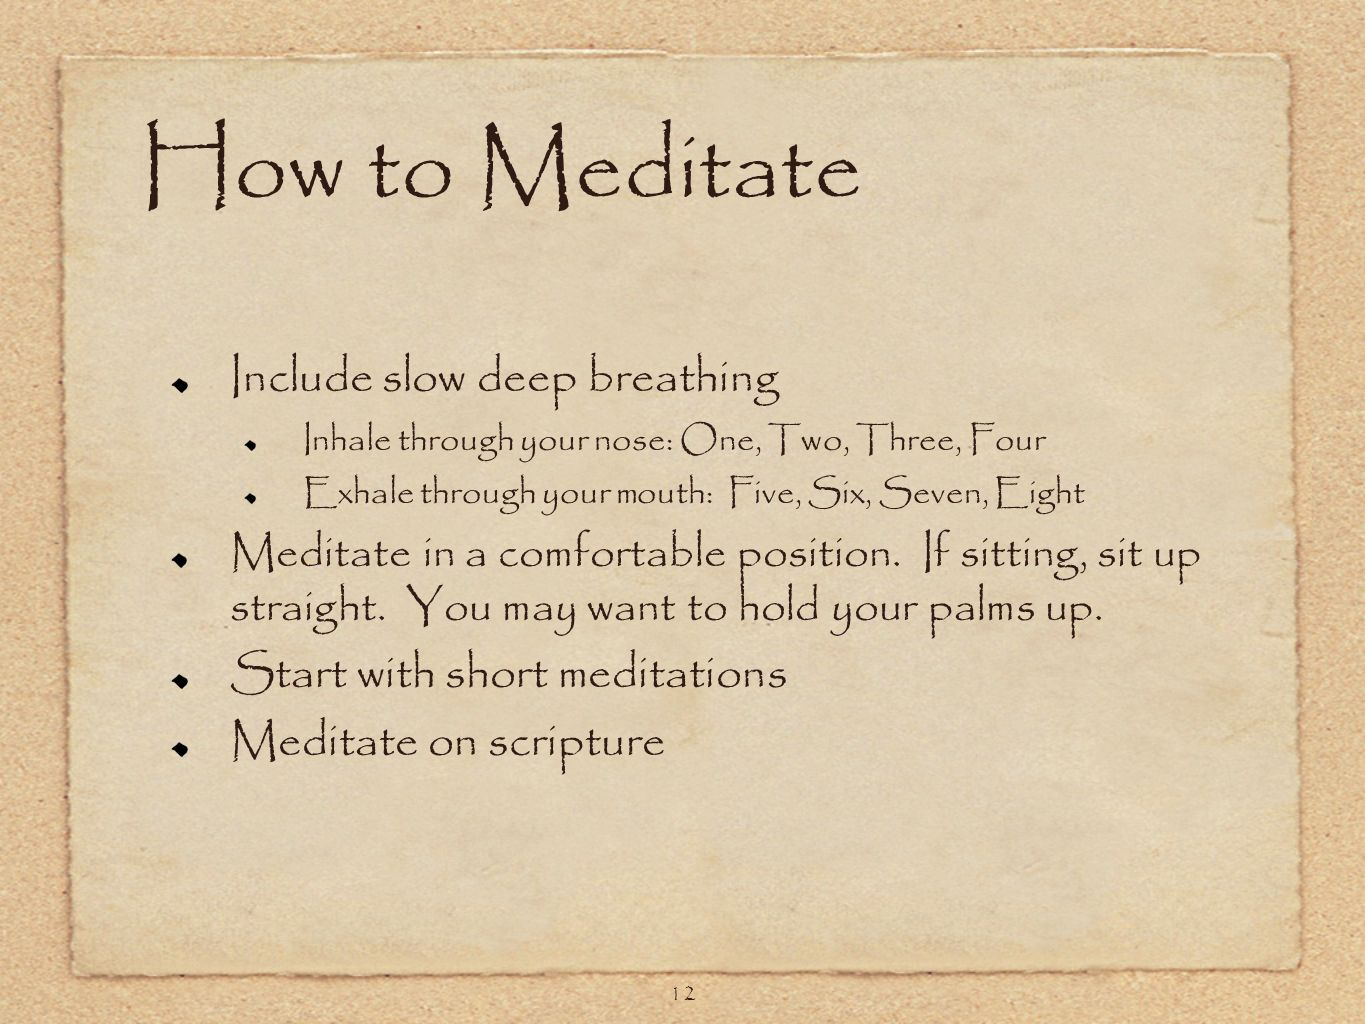 12 How to Meditate Include slow deep breathing Inhale through your nose: One, Two, Three, Four Exhale through your mouth: Five, Six, Seven, Eight Meditate in a comfortable position.